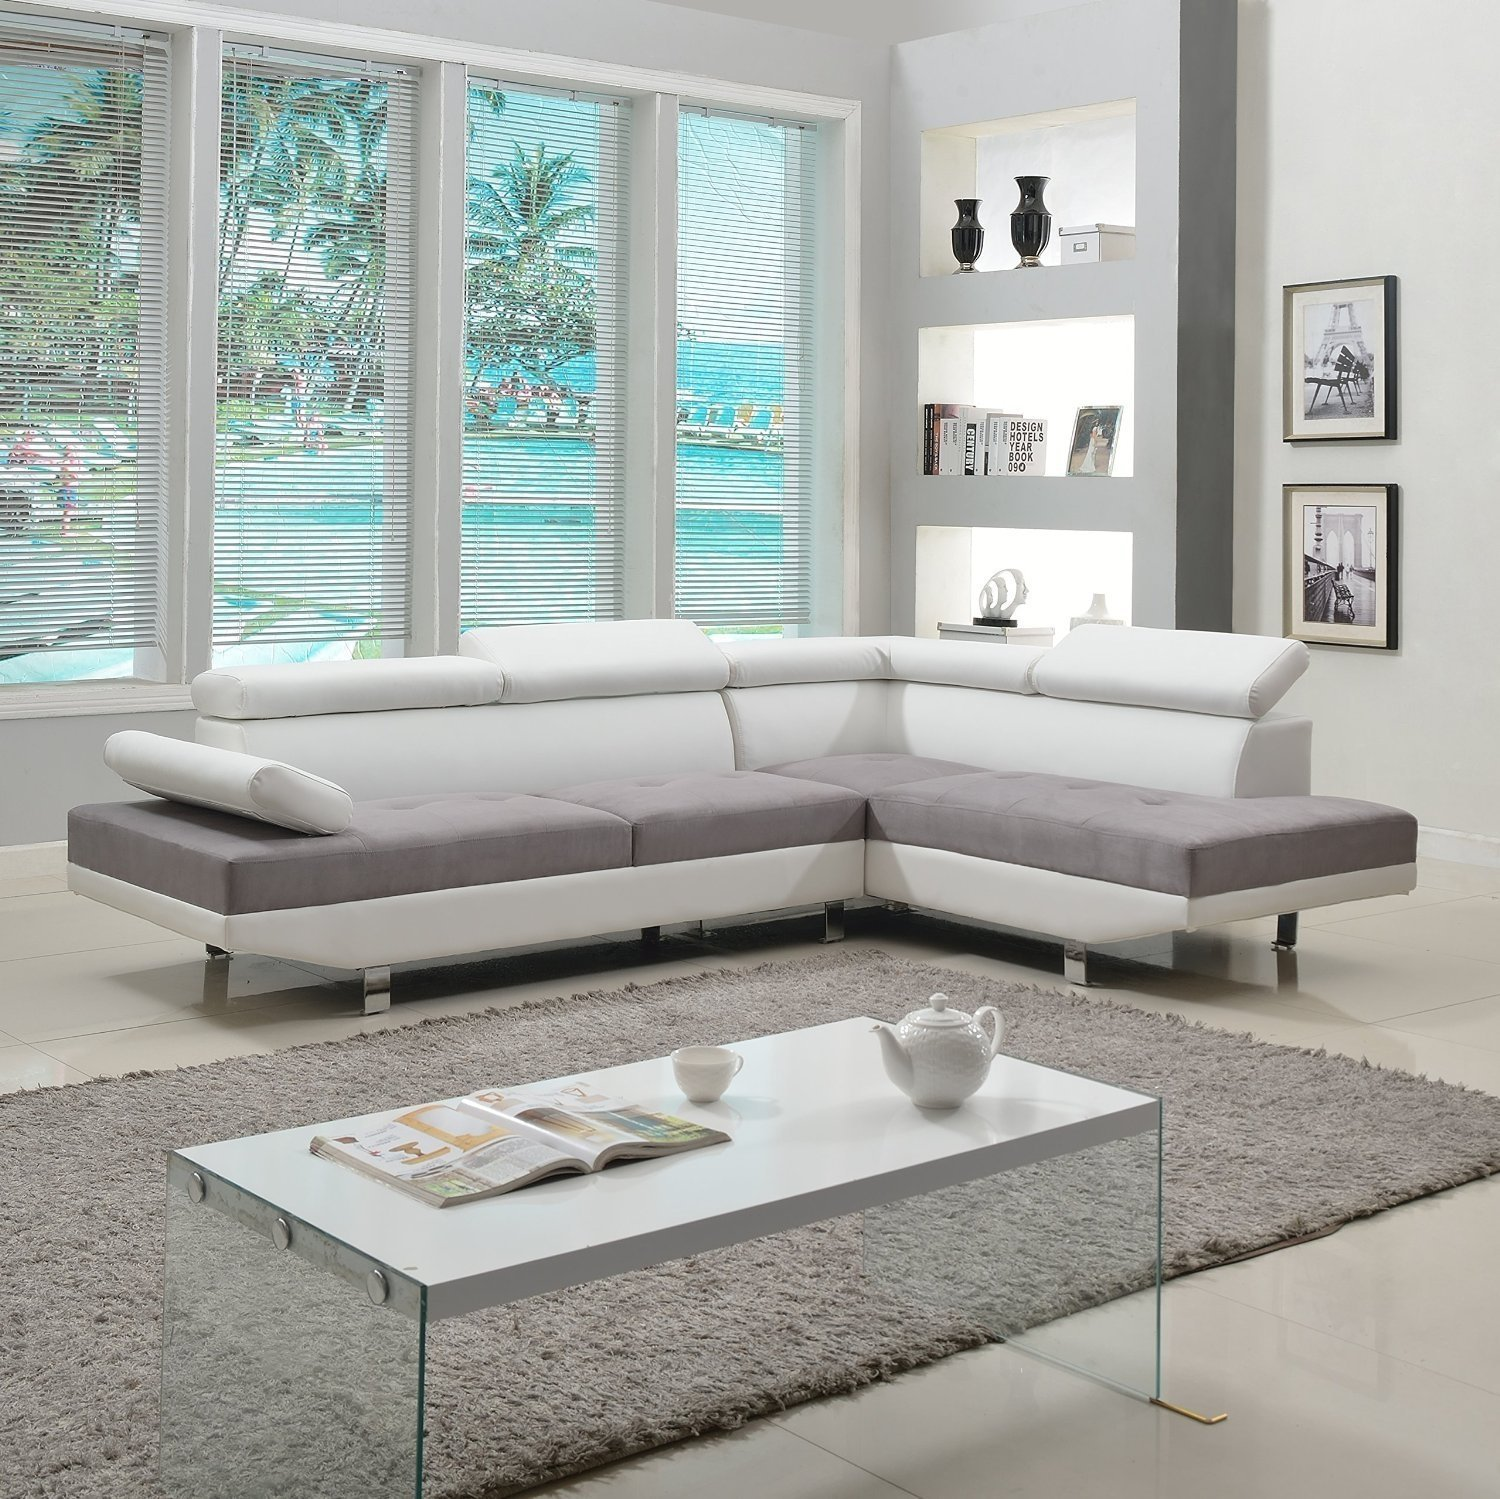 Fabulous Details About Modern Contemporary Design 2 Tone Microfiber Bonded Leather Sectional Sofa White Ncnpc Chair Design For Home Ncnpcorg